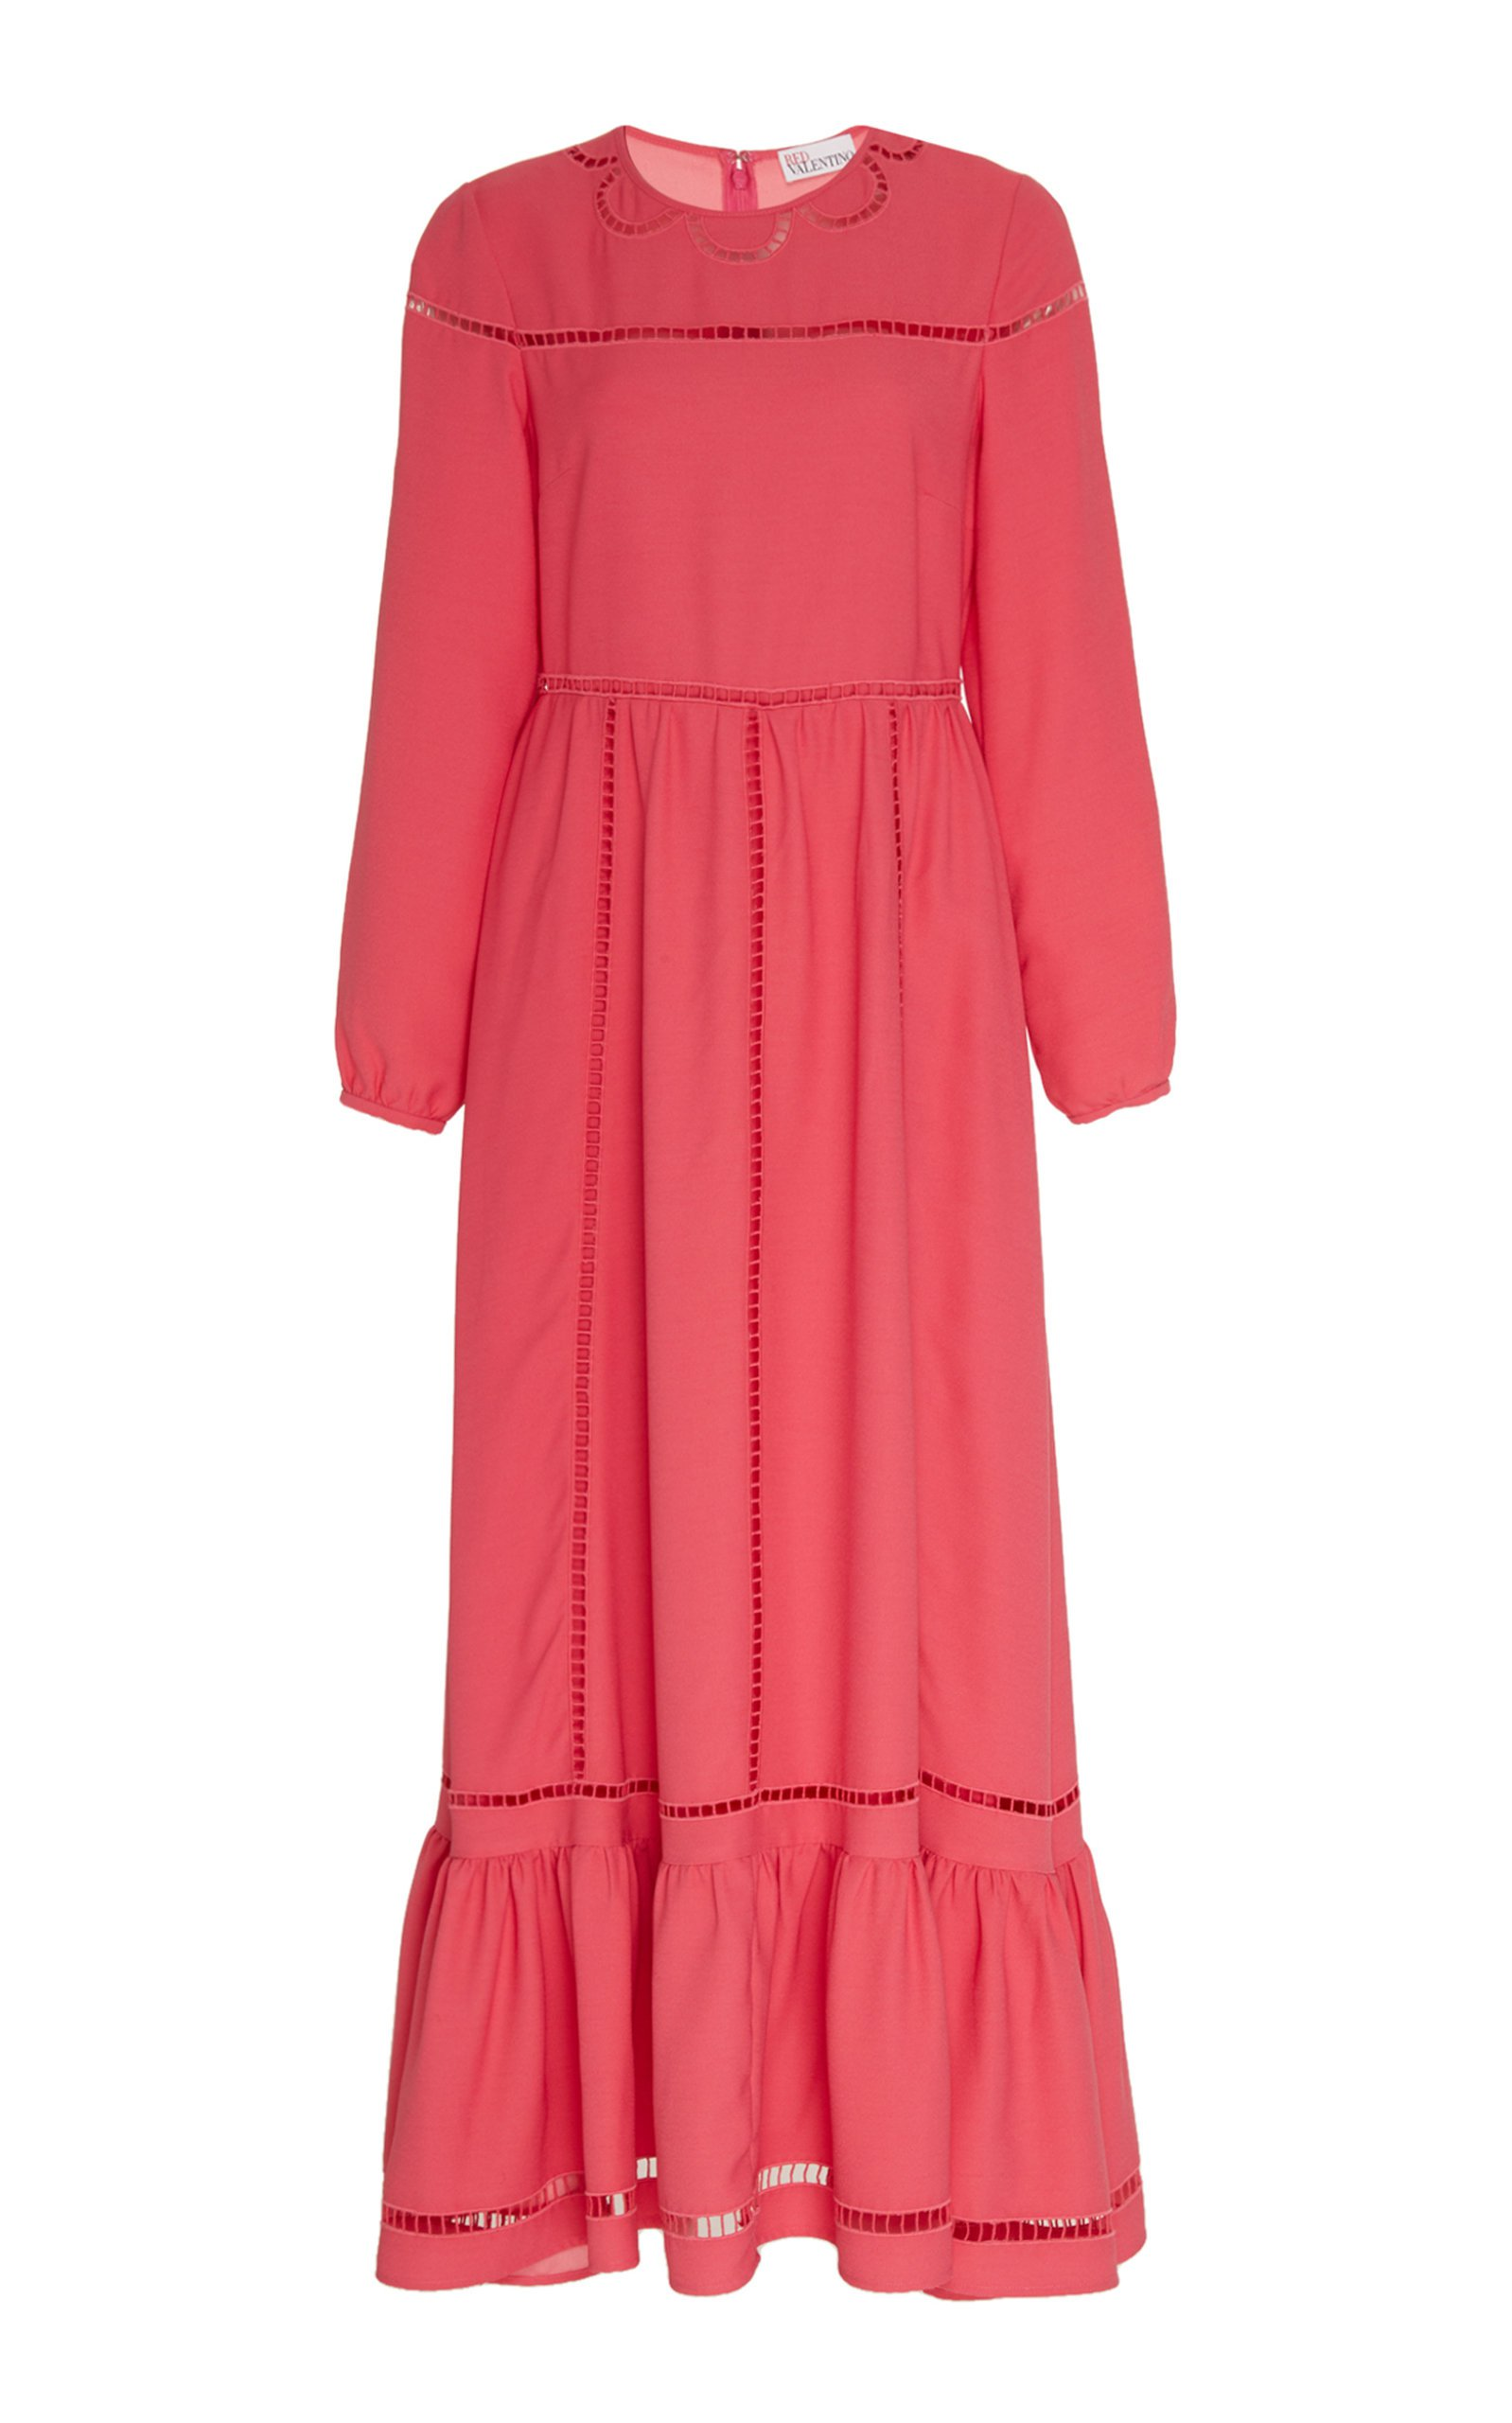 Red Valentino Pointelle Crepe De Chine Maxi Dress Size: 36